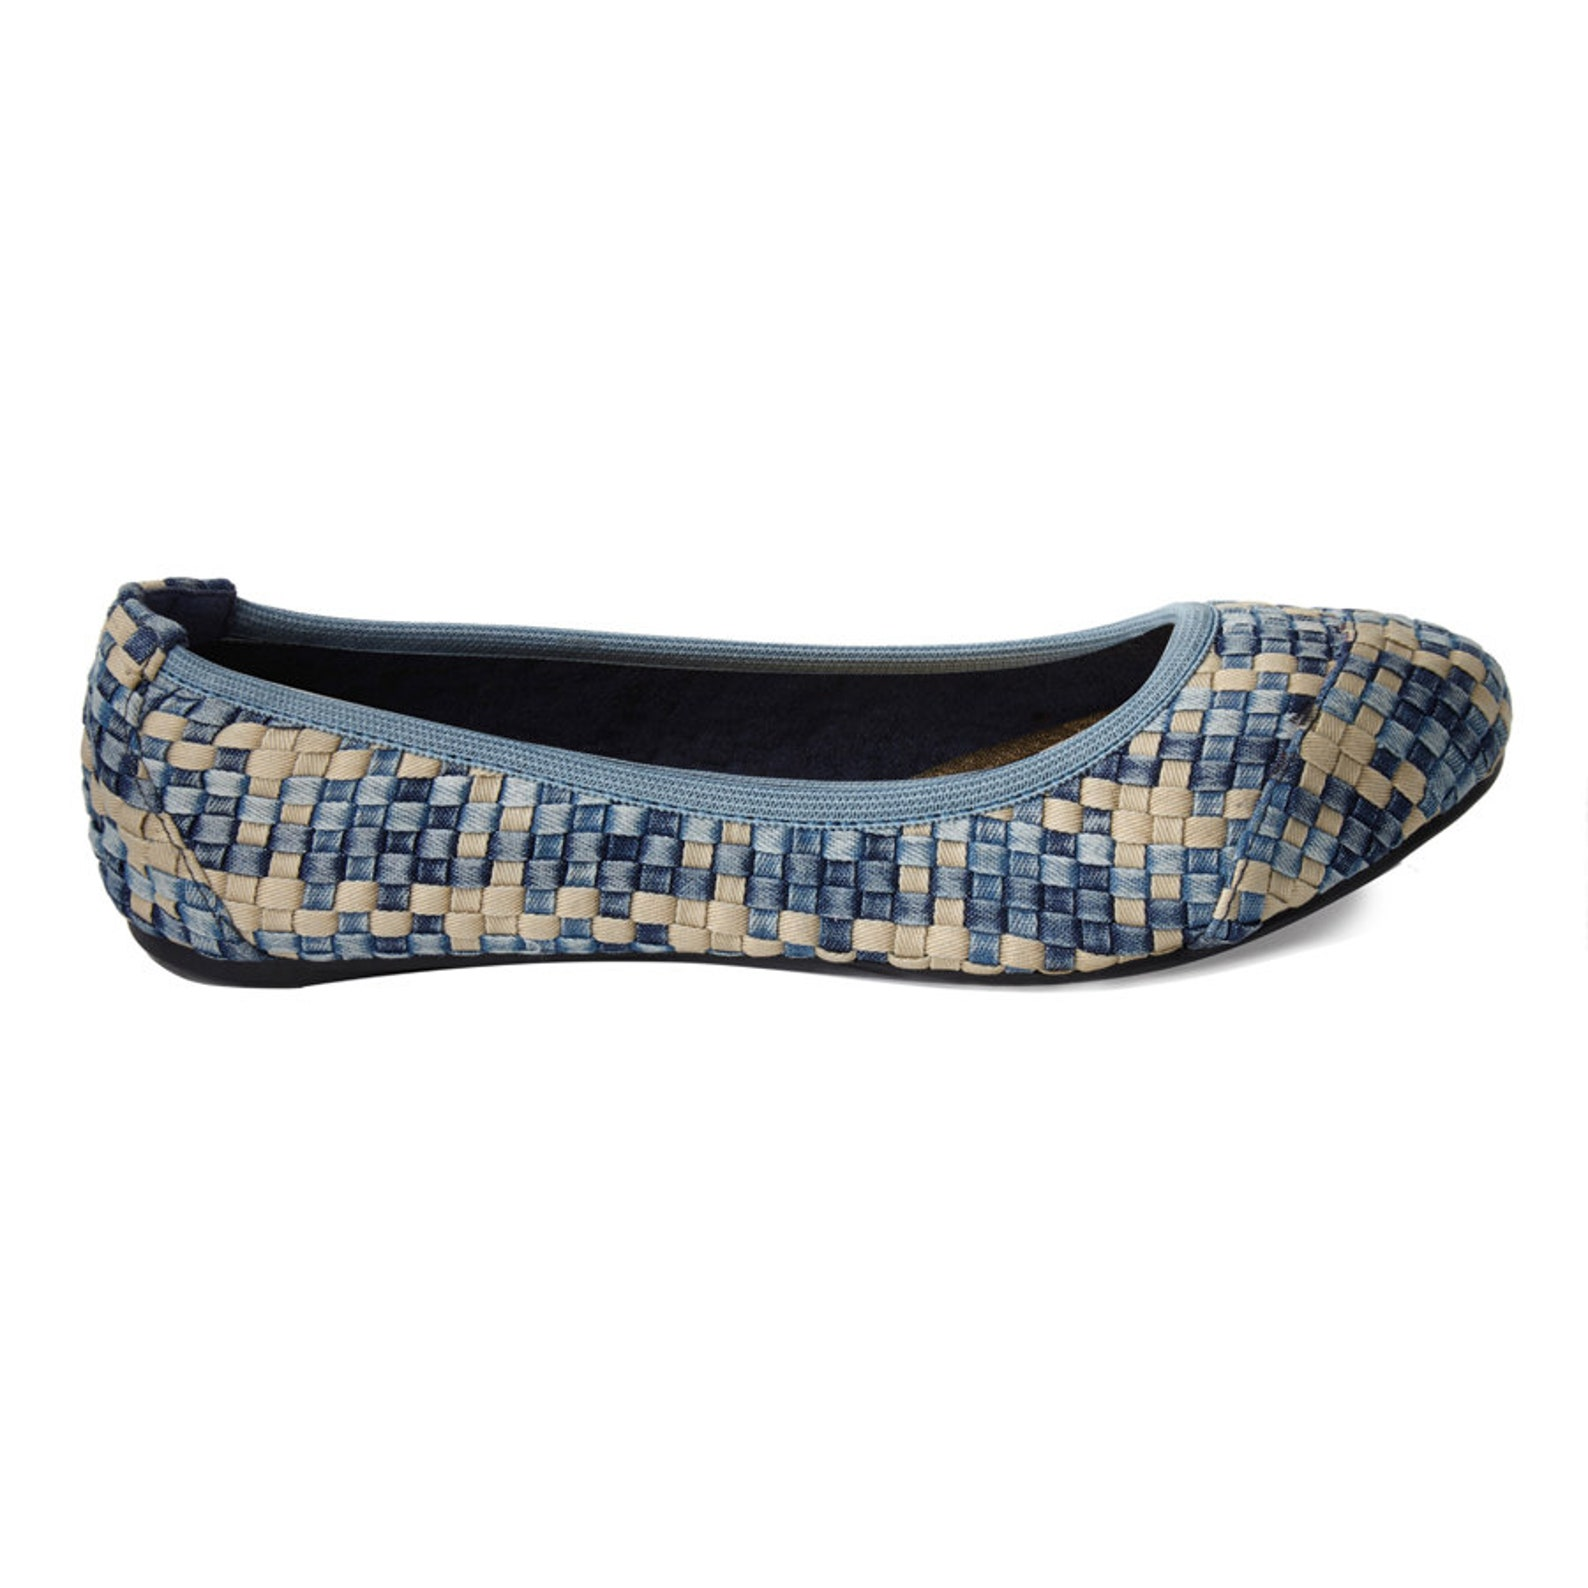 cocorose foldable shoes - barbican ladies ballet pumps - woven denim